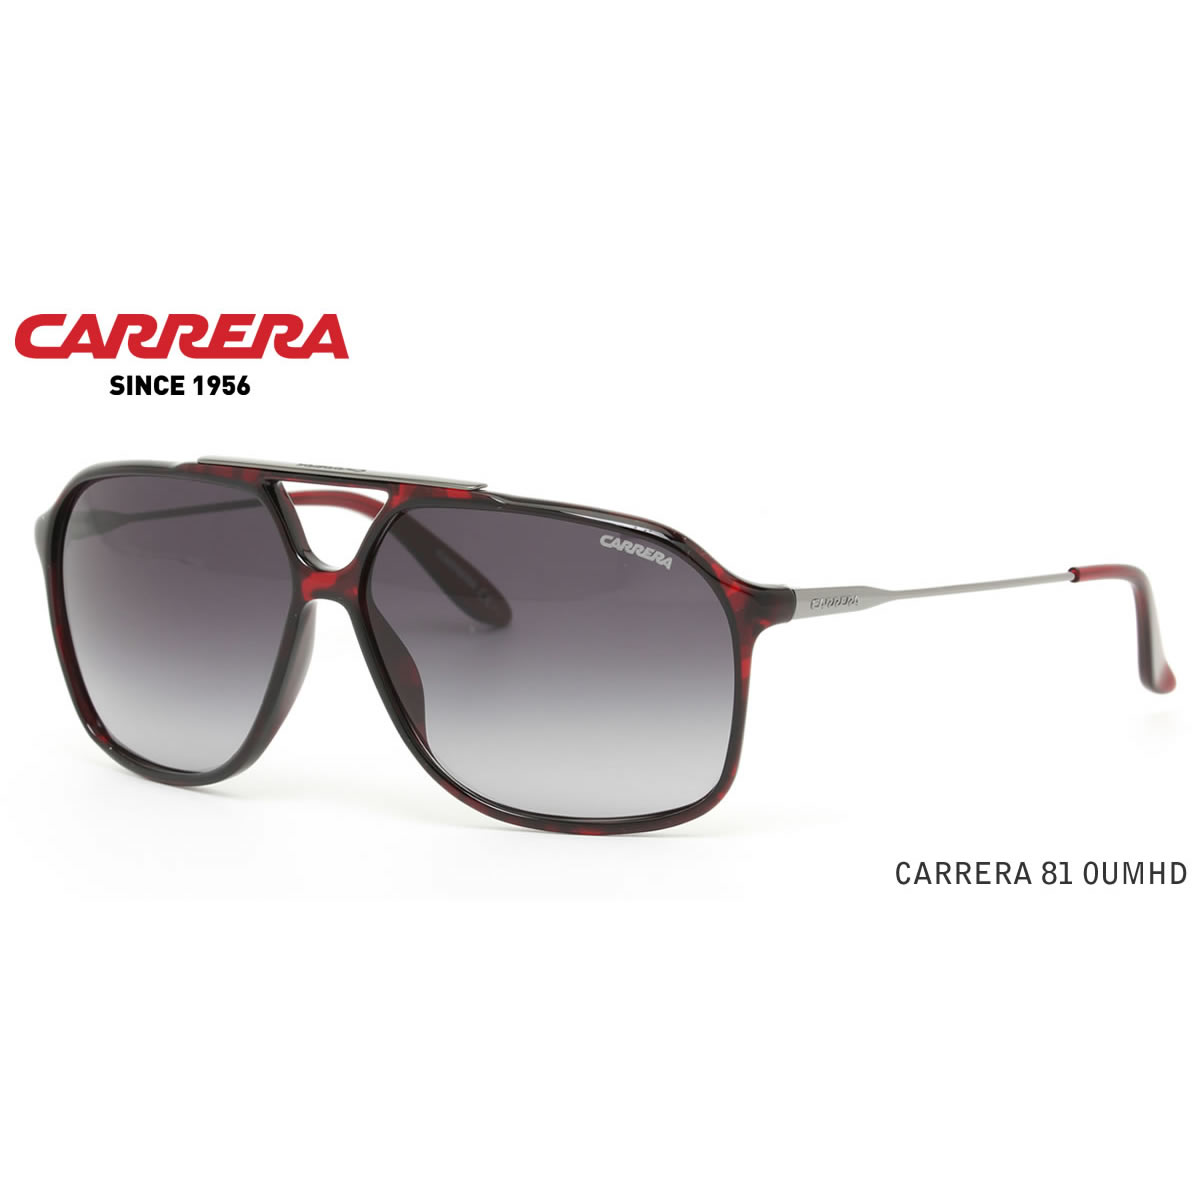 4157f25a7412 Optical Shop Thats: A large reduction in price! CARRERA 81 0UMHD 63 ...